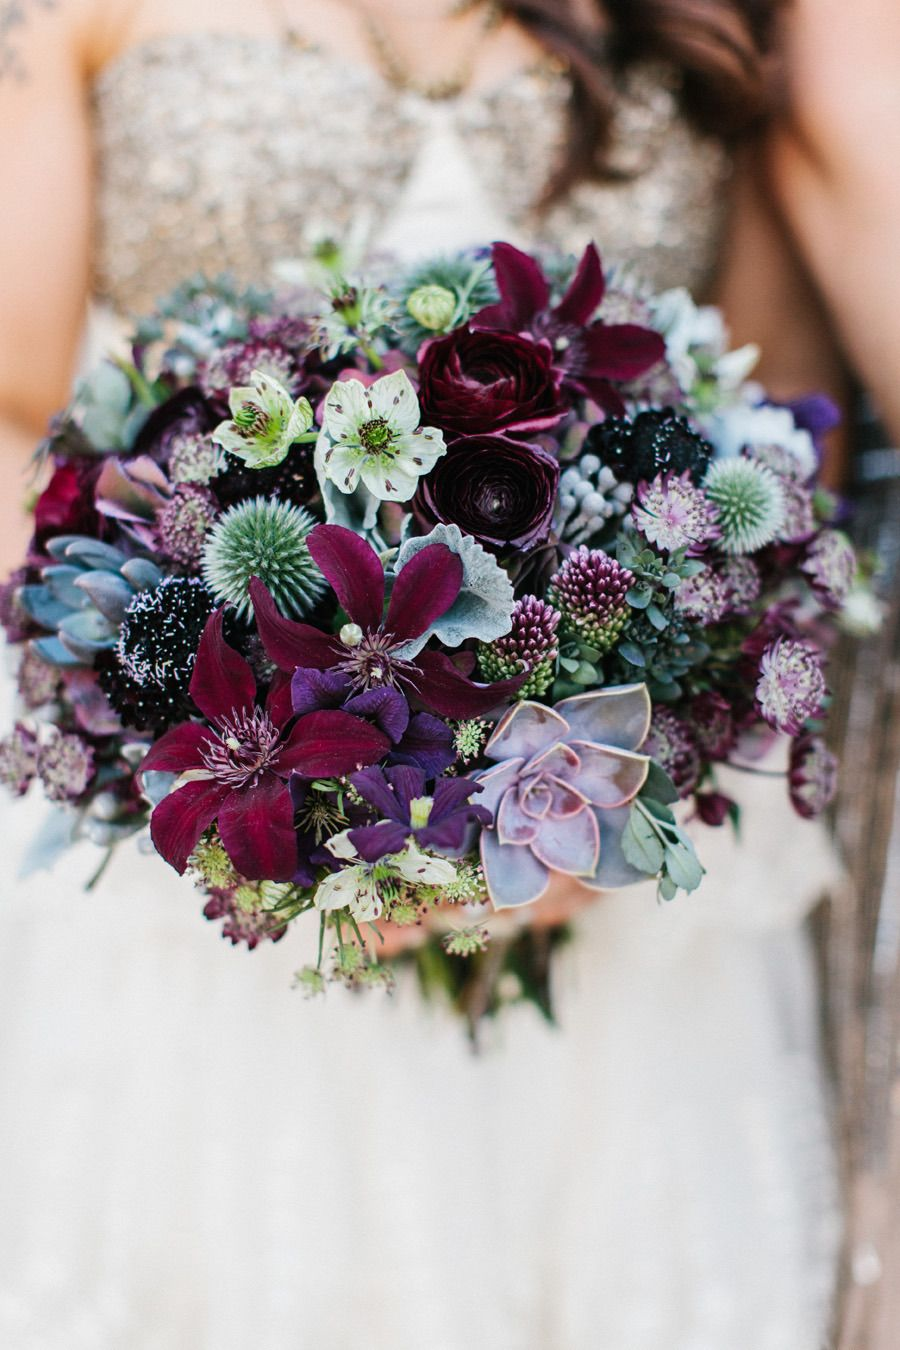 non-traditional wedding bouquet in purple shades